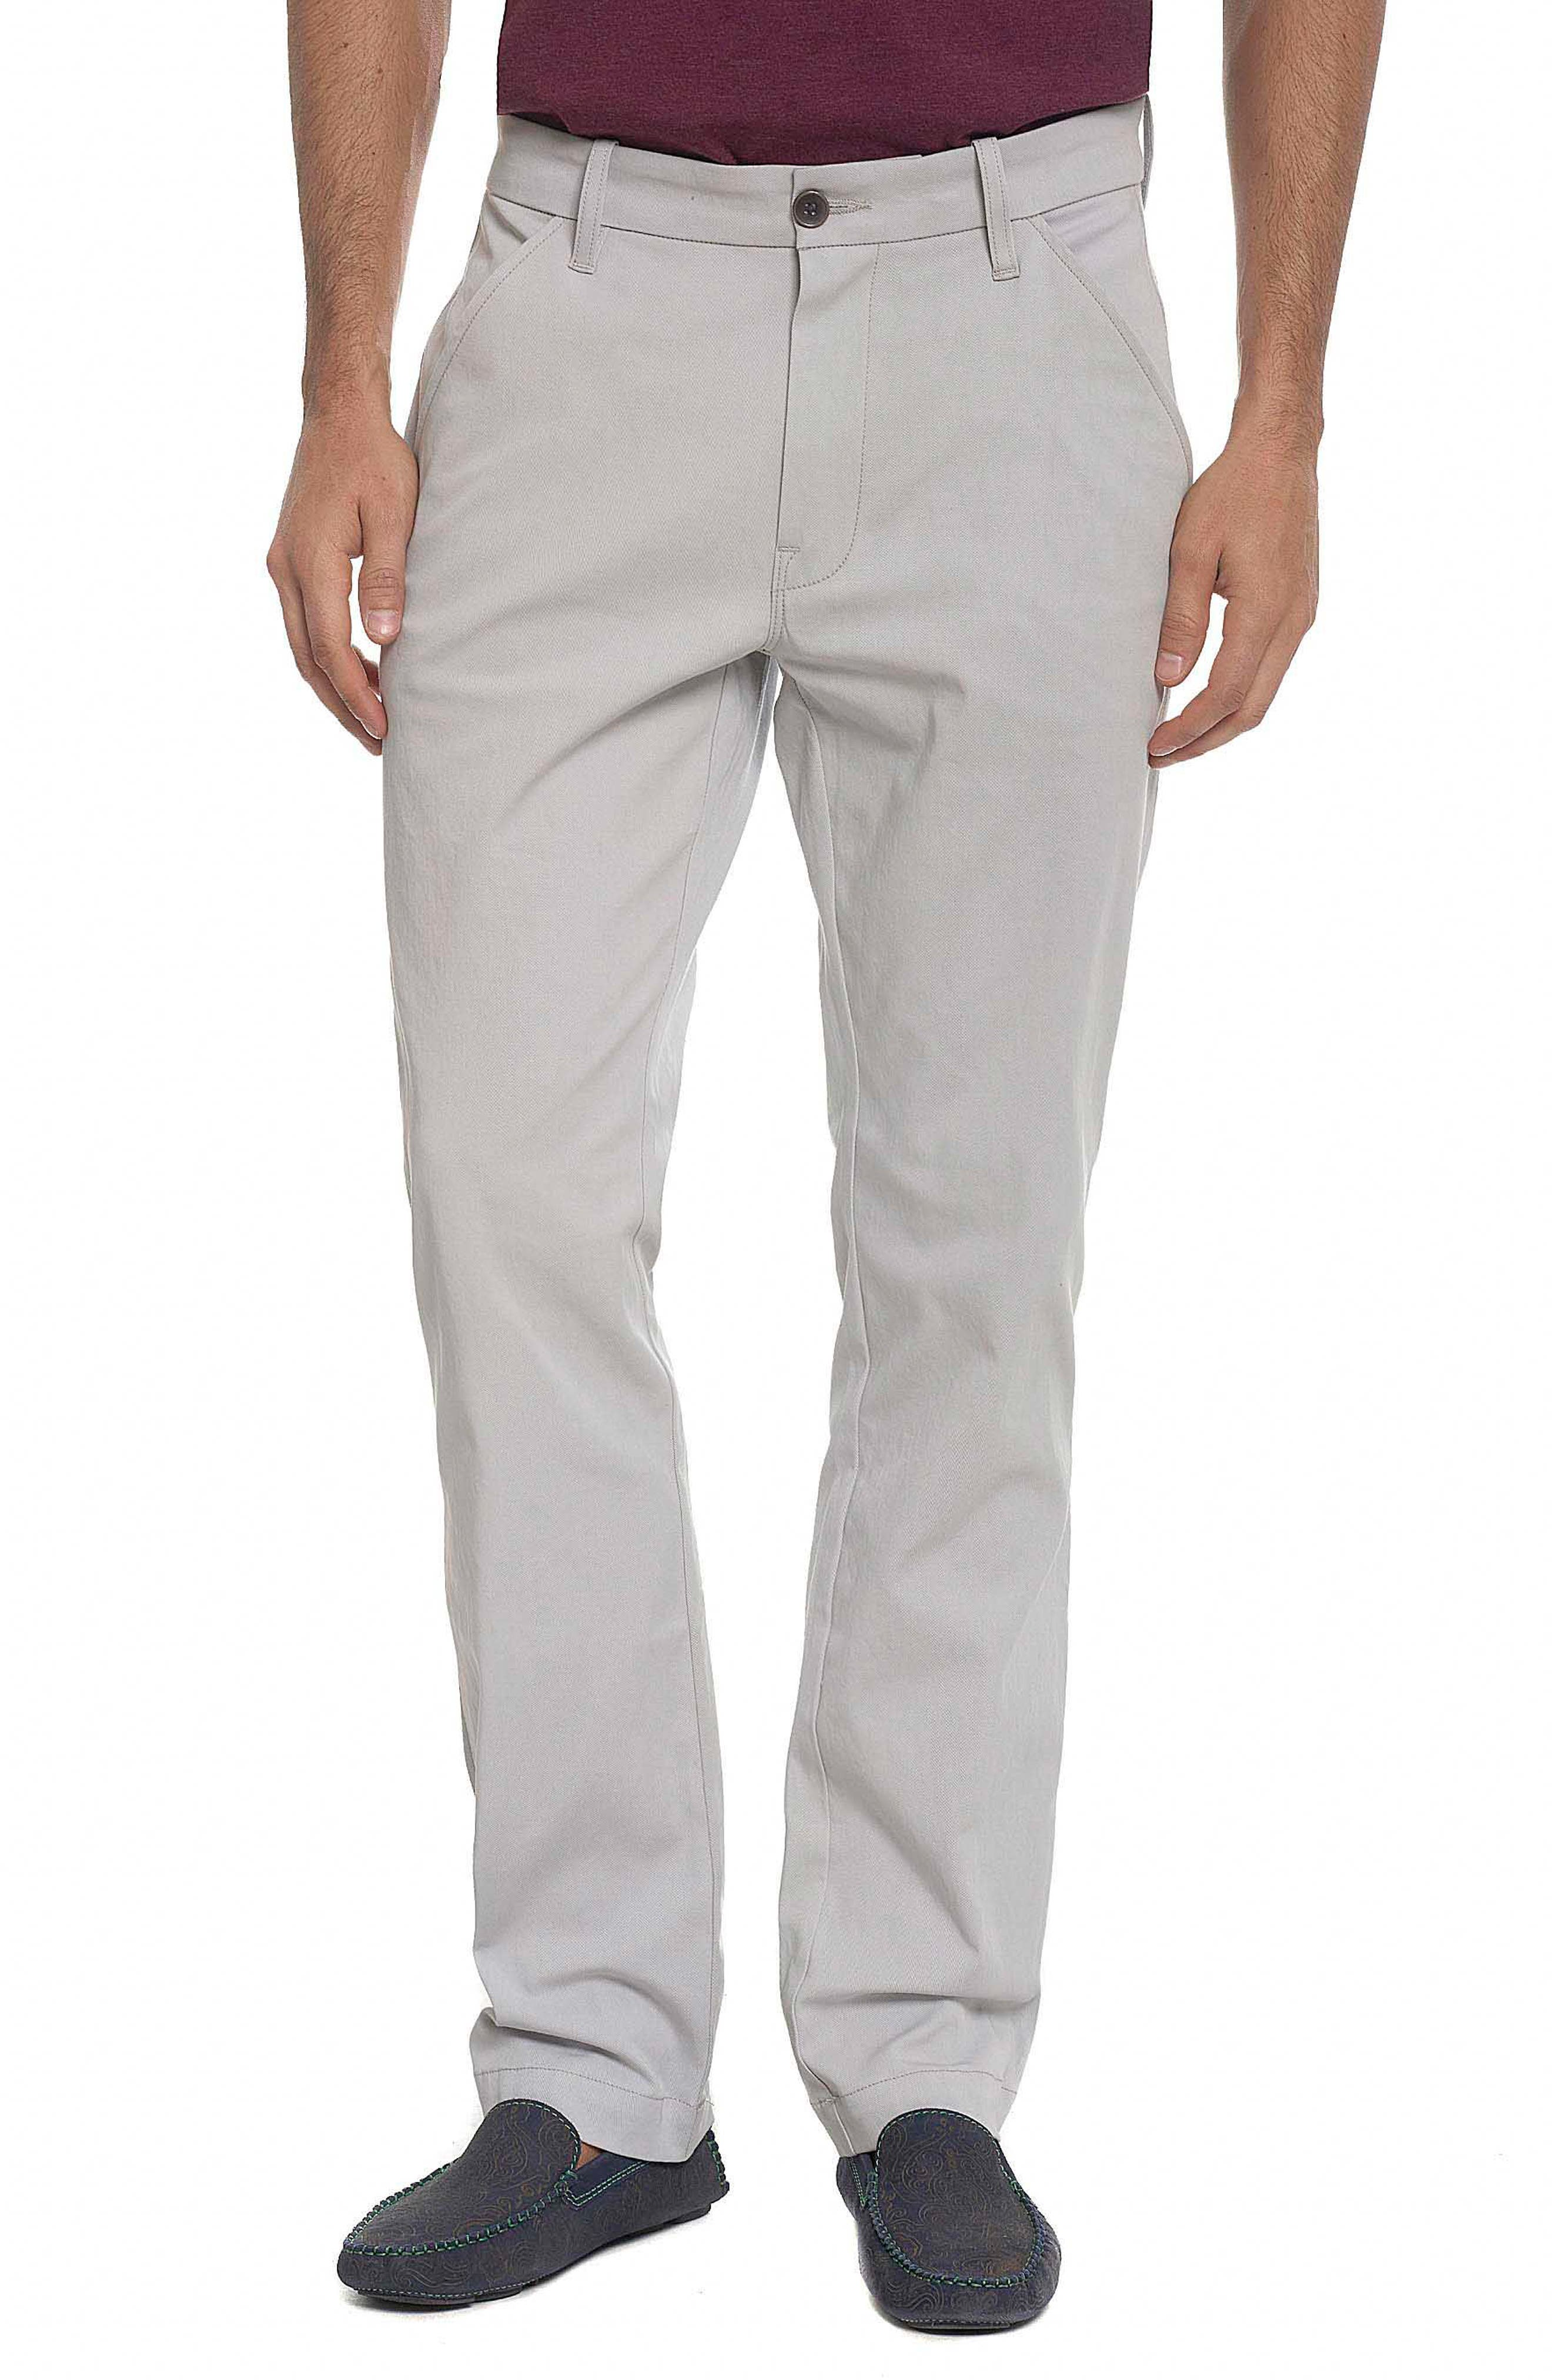 Main Image - Robert Graham Layton Tailored Fit Stretch Cotton Pants